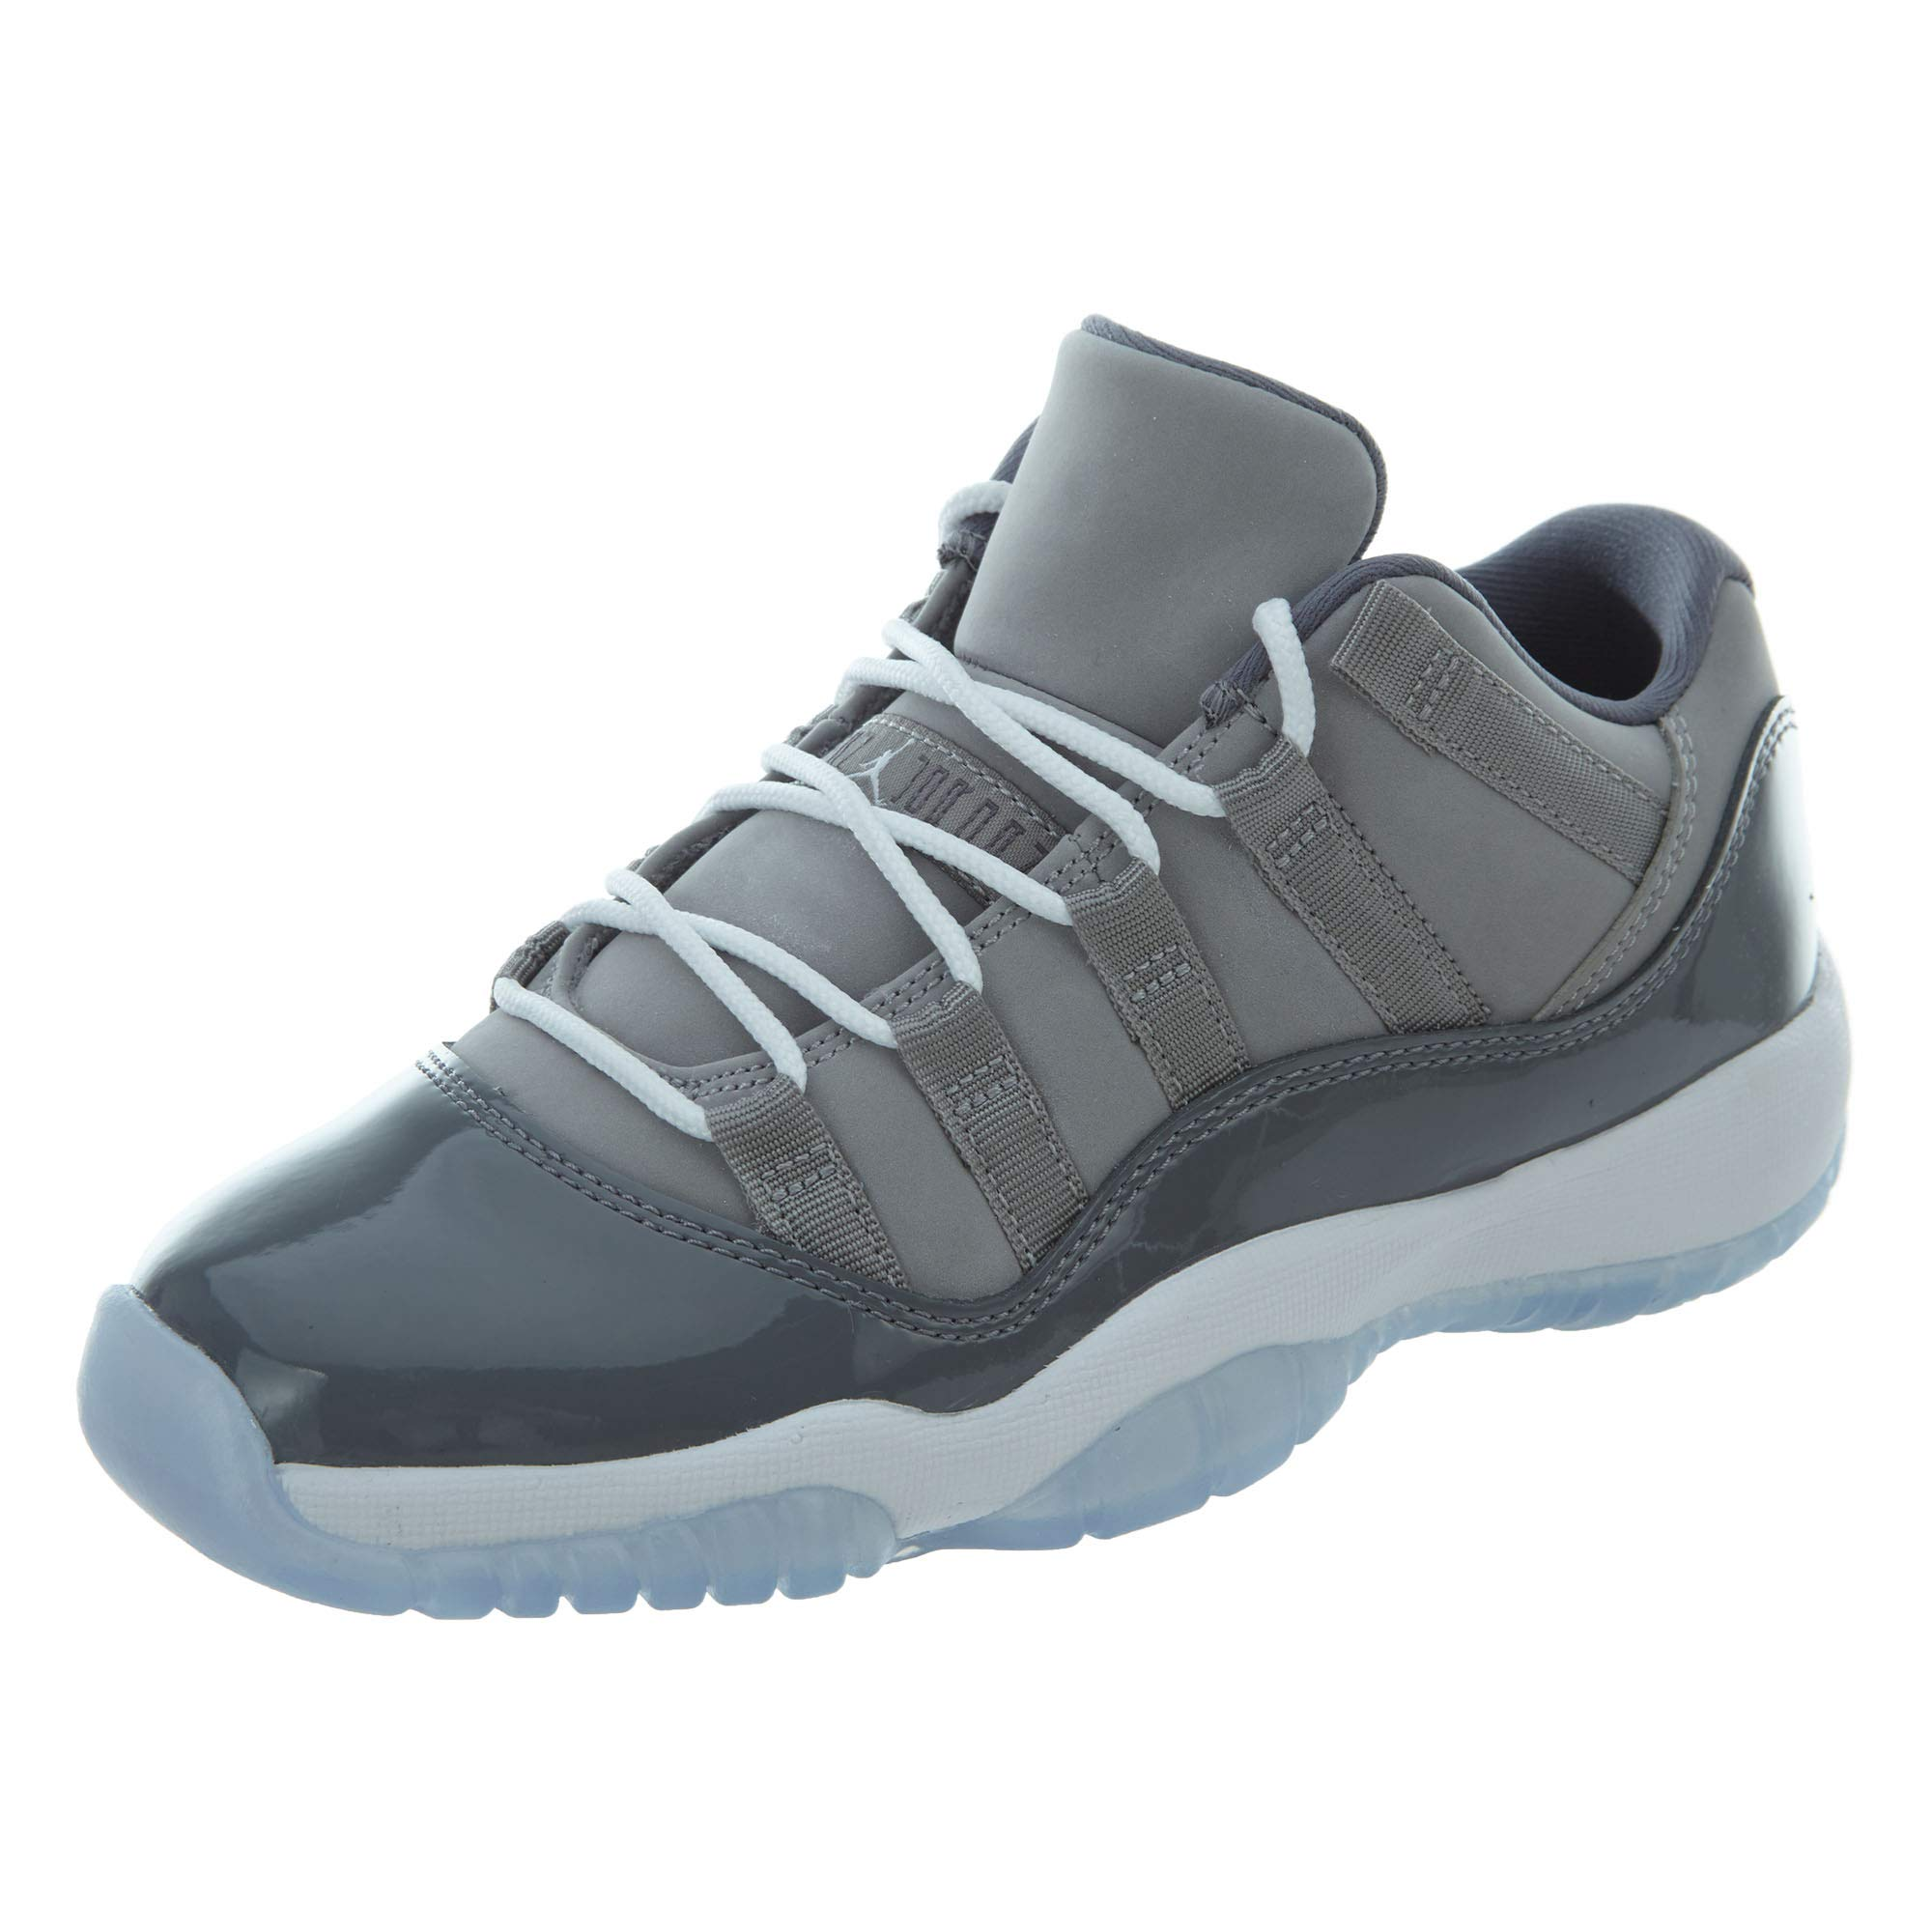 Jordan Nike 11 Retro Low Cool Grey Boys/Girls Style: 528896-003 Size: 5.5